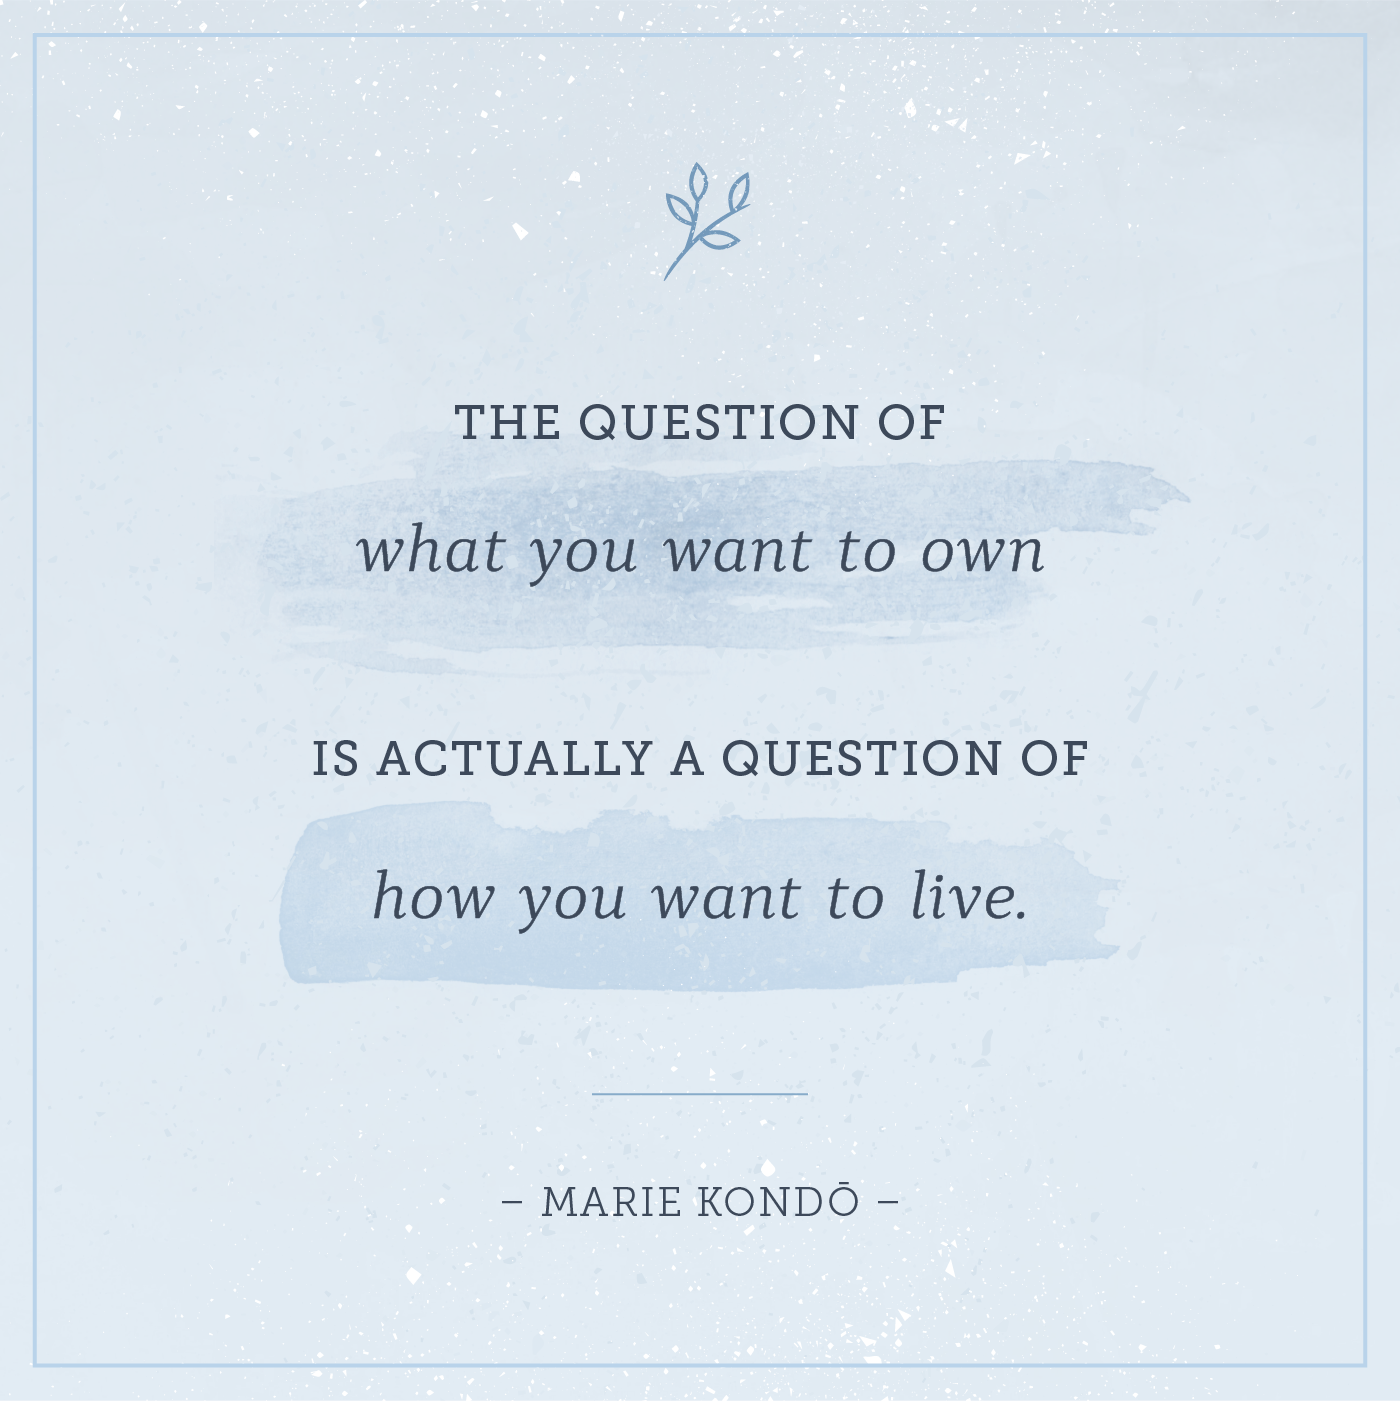 the question of what you want to own is actually a question of how you want to live